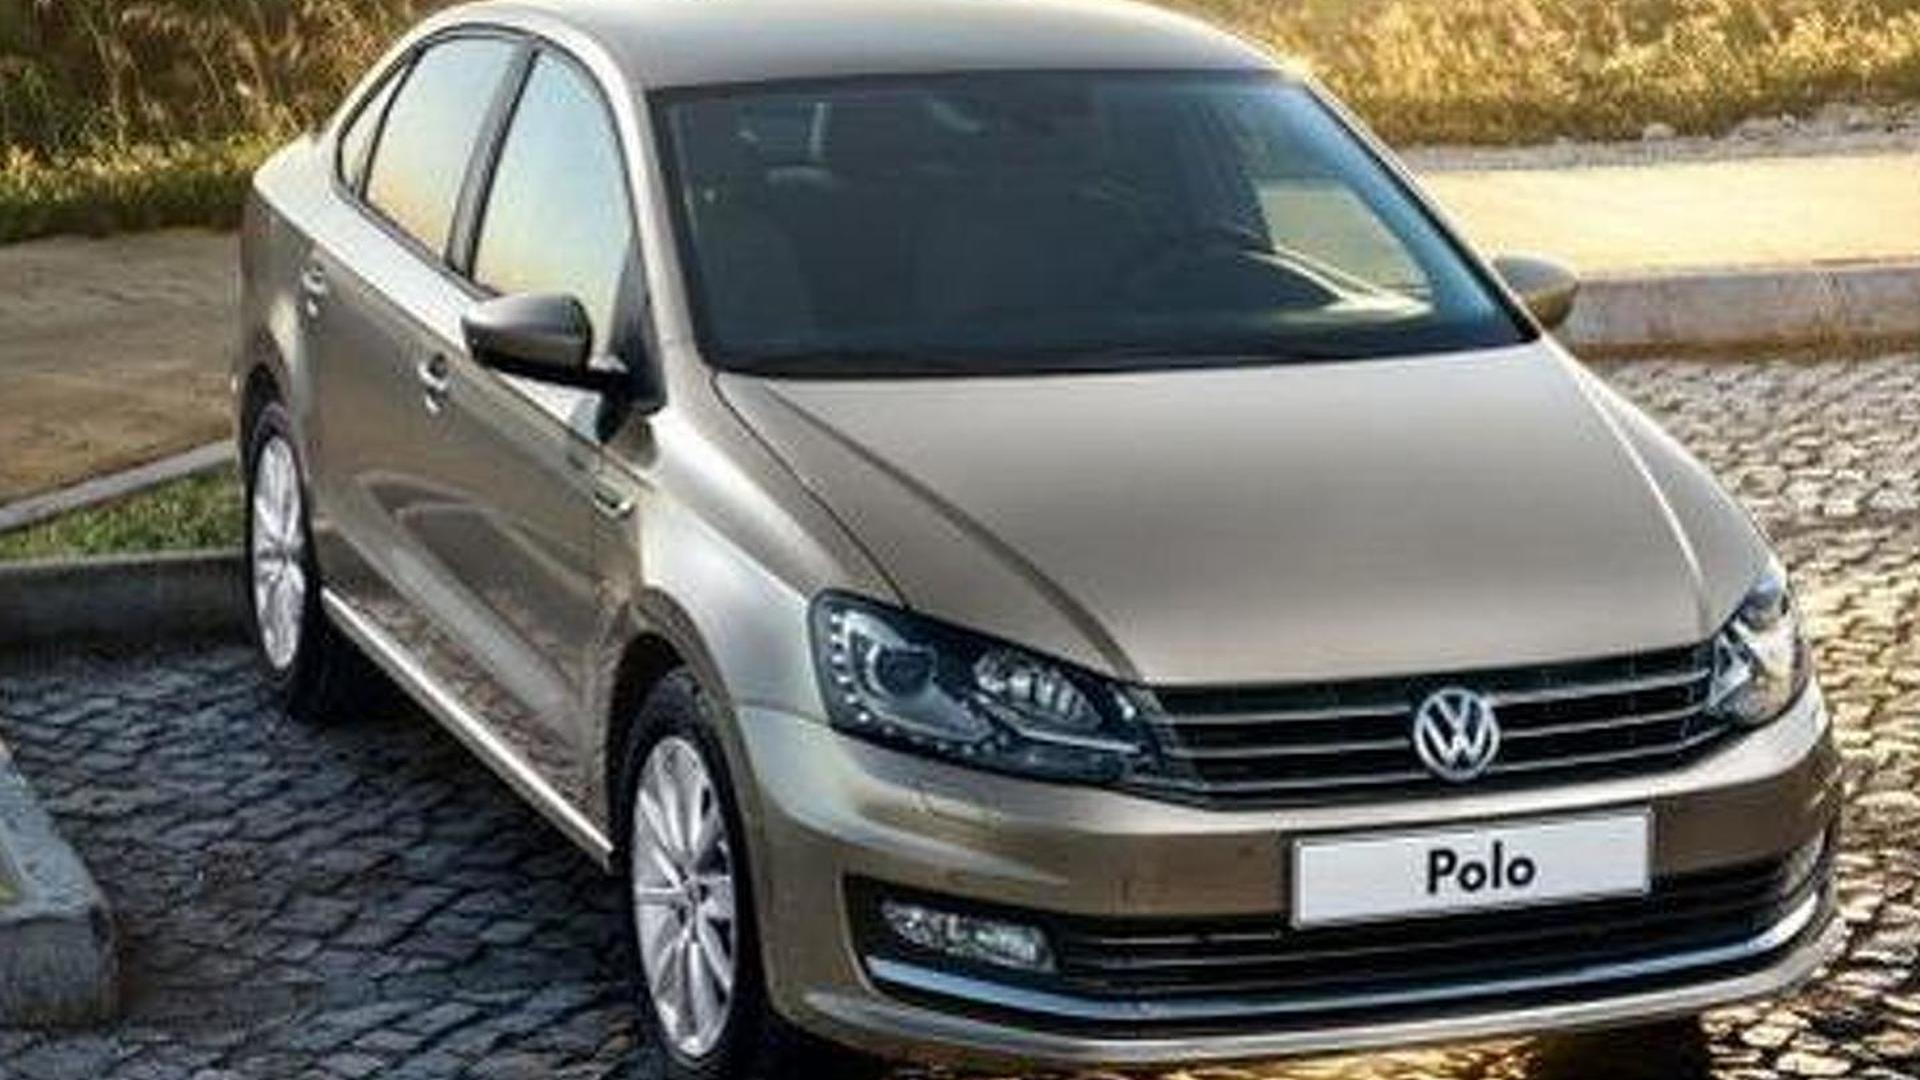 Volkswagen Polo Sedan News and Reviews | Motor1.com